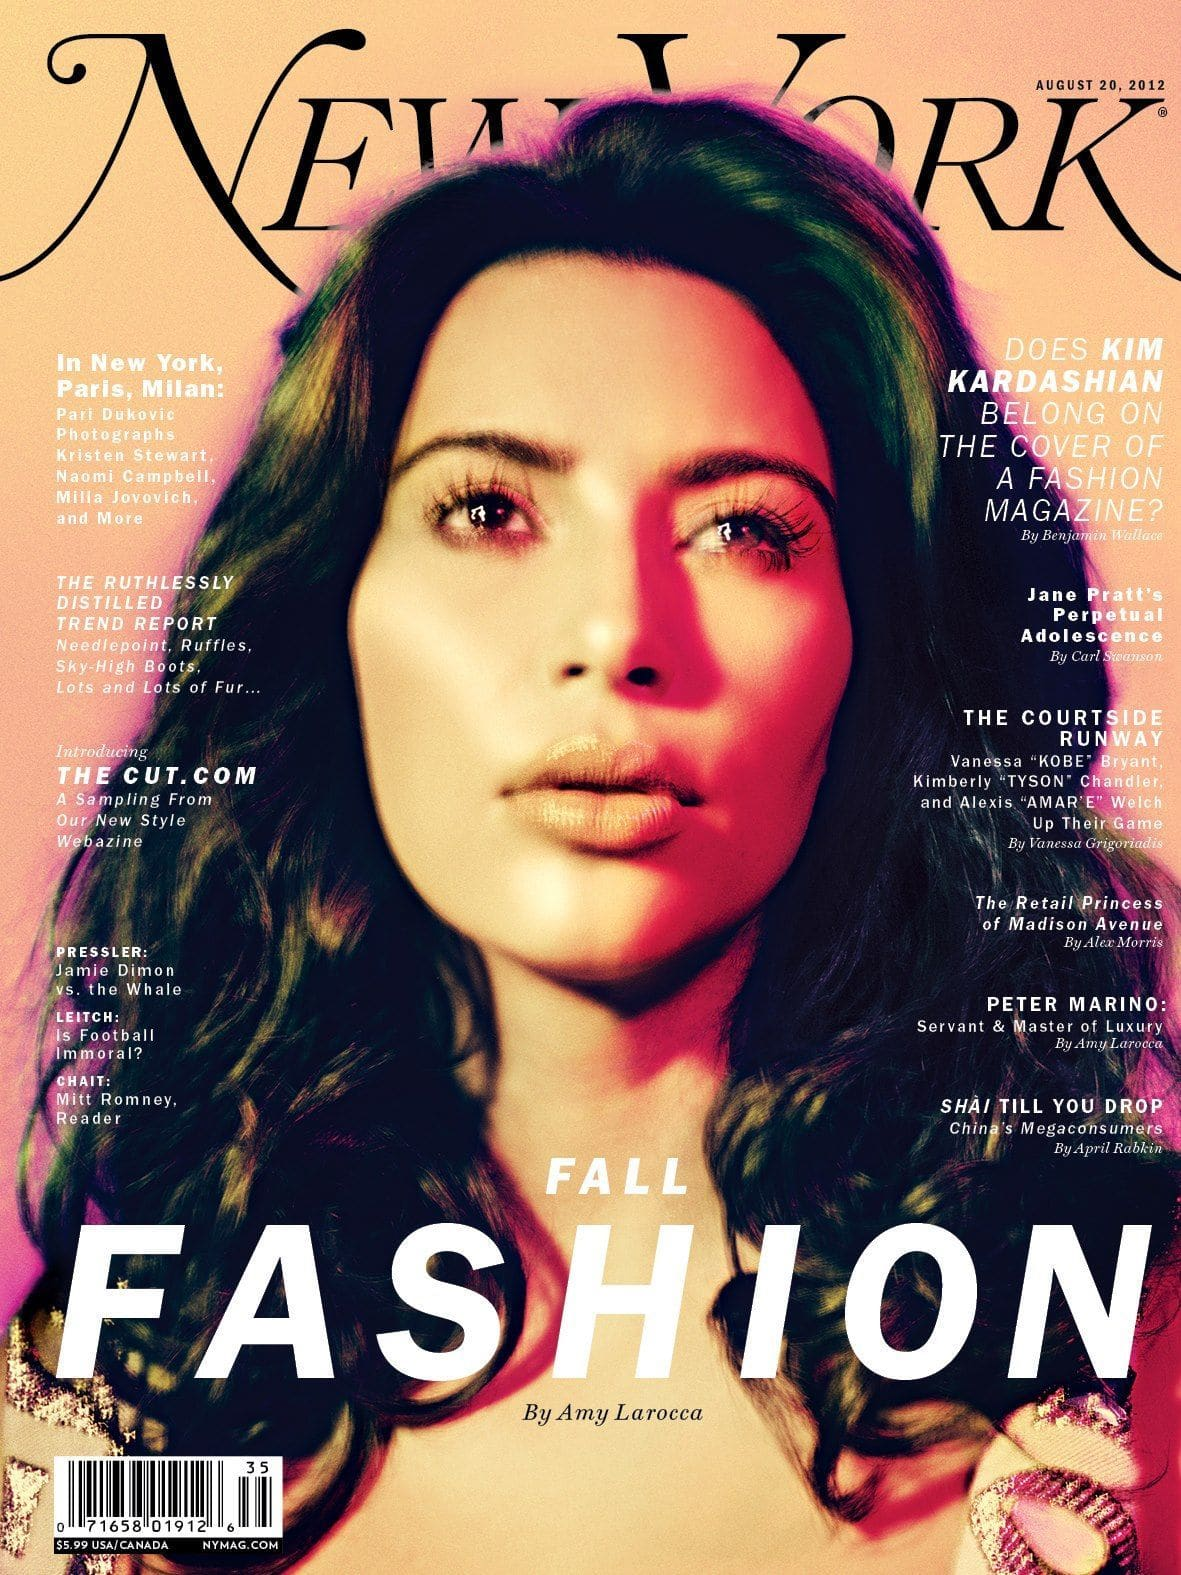 New York Magazine Subscription (42 Issues) $5/year (up to 3 years)